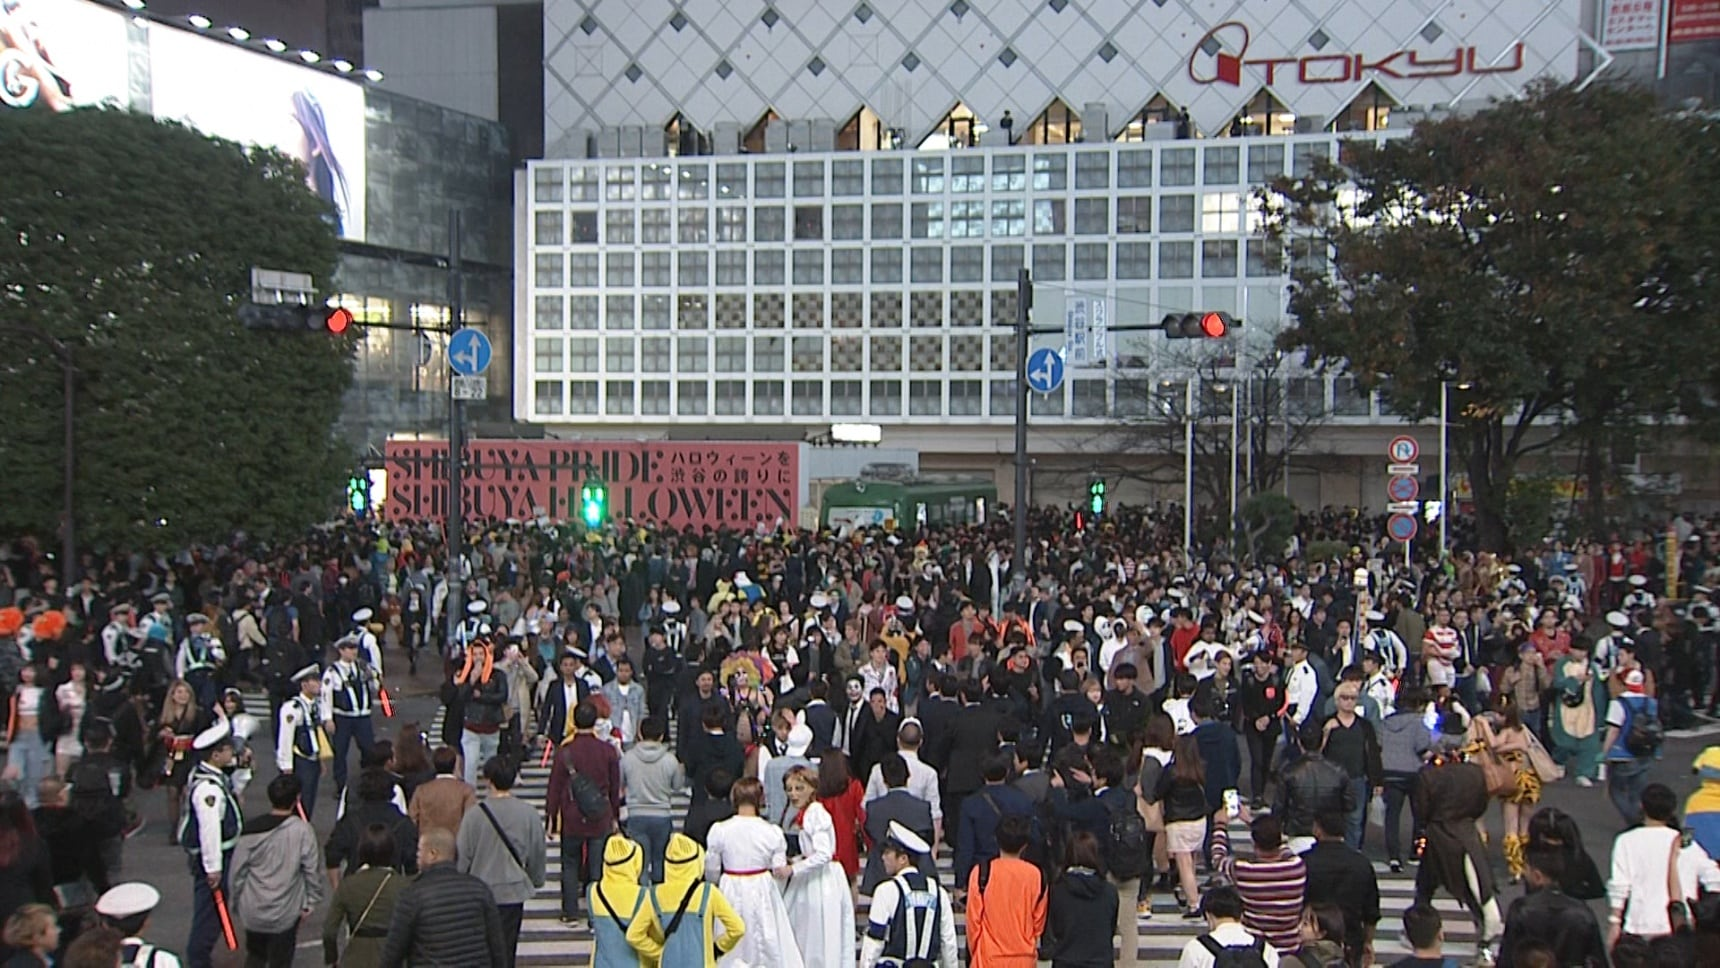 Halloween Sibuya 2020 Youtube Foreigner No Halloween Gathering in Shibuya in 2020 | All About Japan